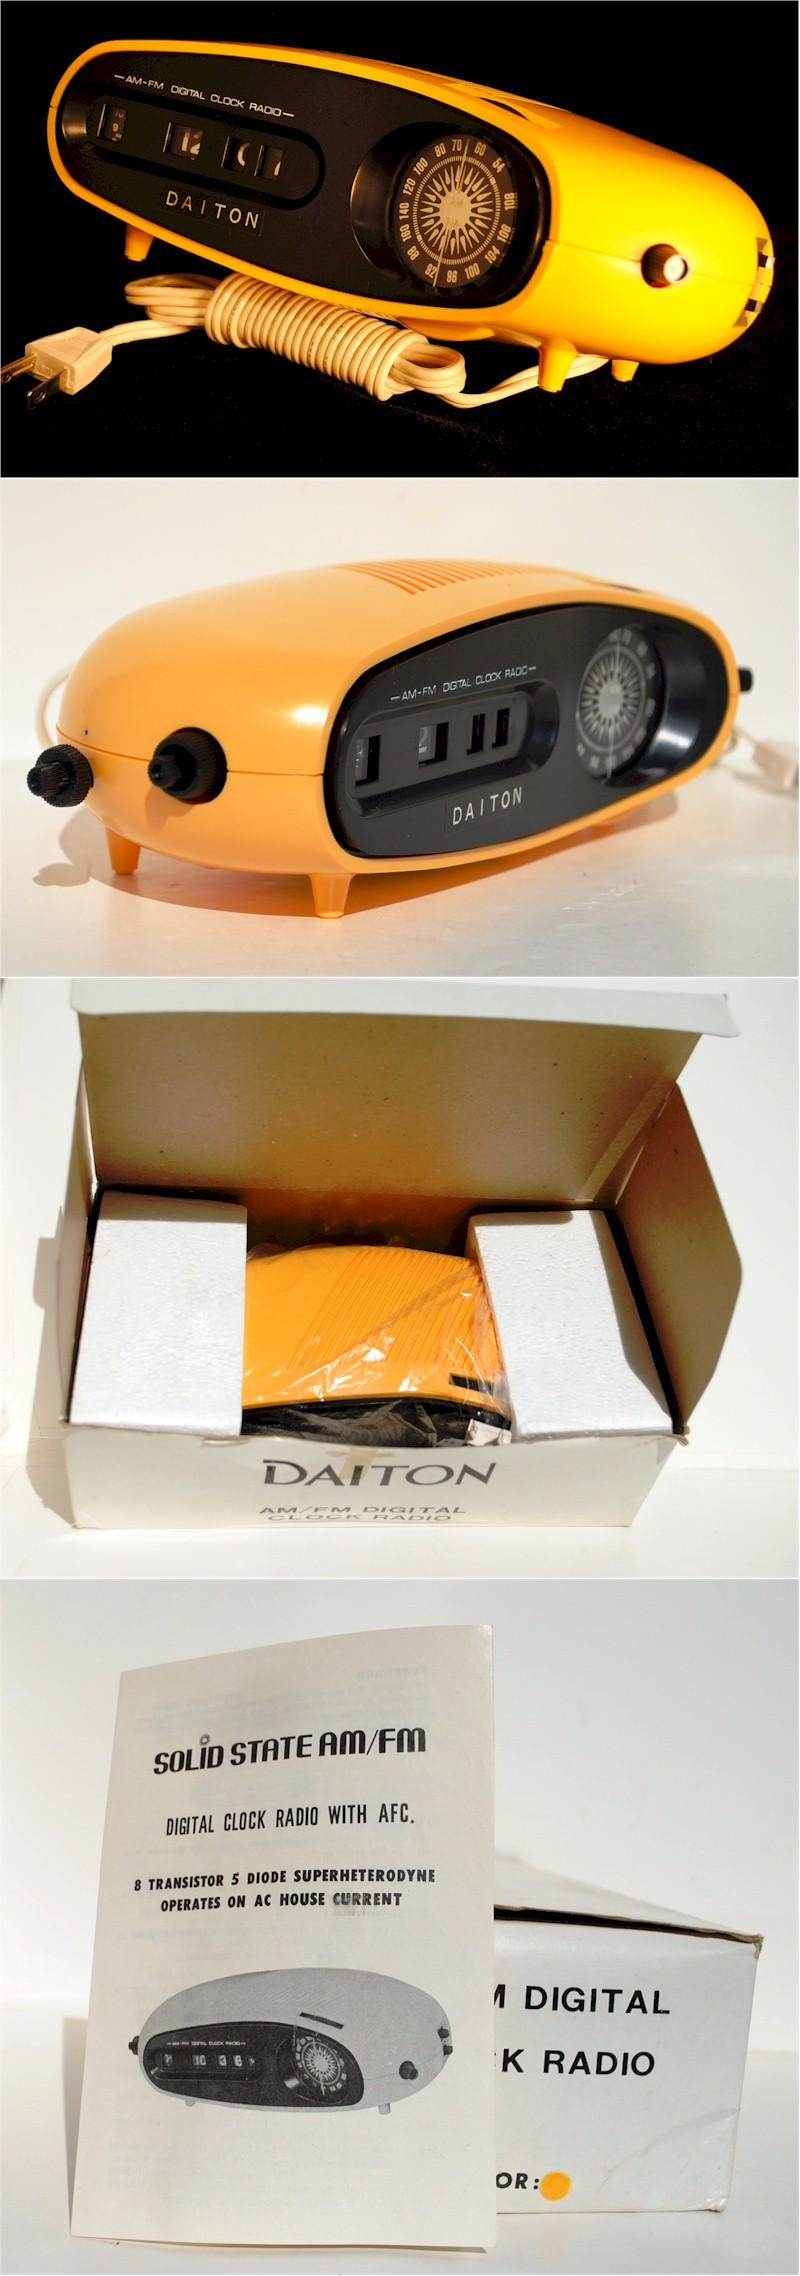 Daiton AM/FM Clock Radio